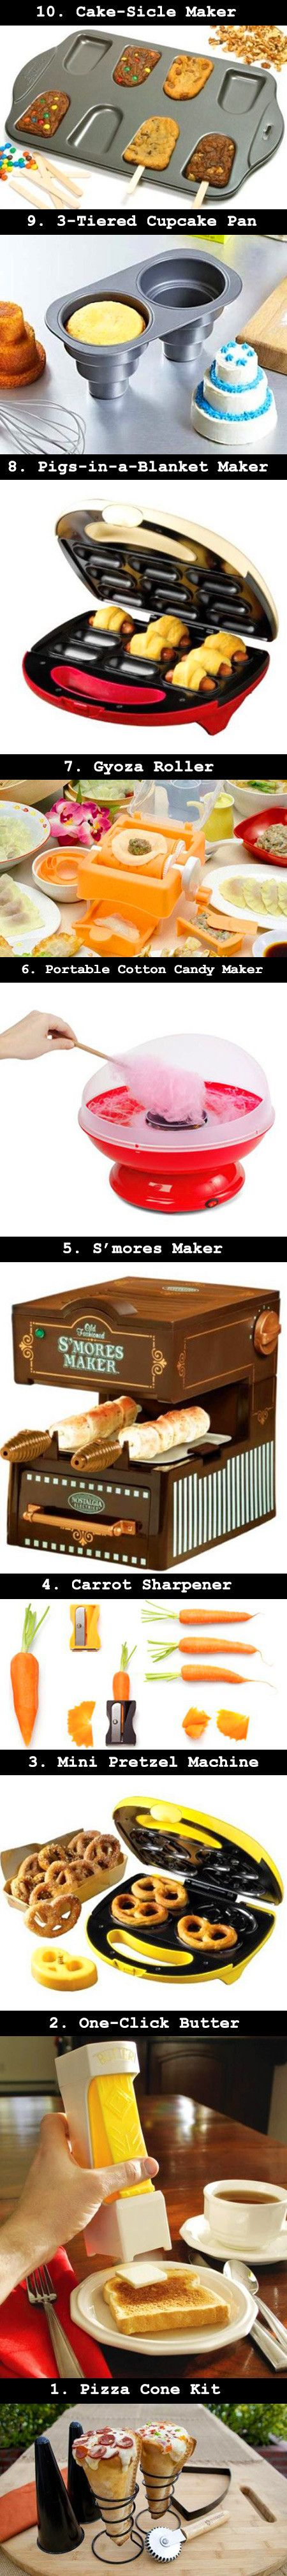 Pin by heather howe on cool products pinterest Awesome kitchen gadgets